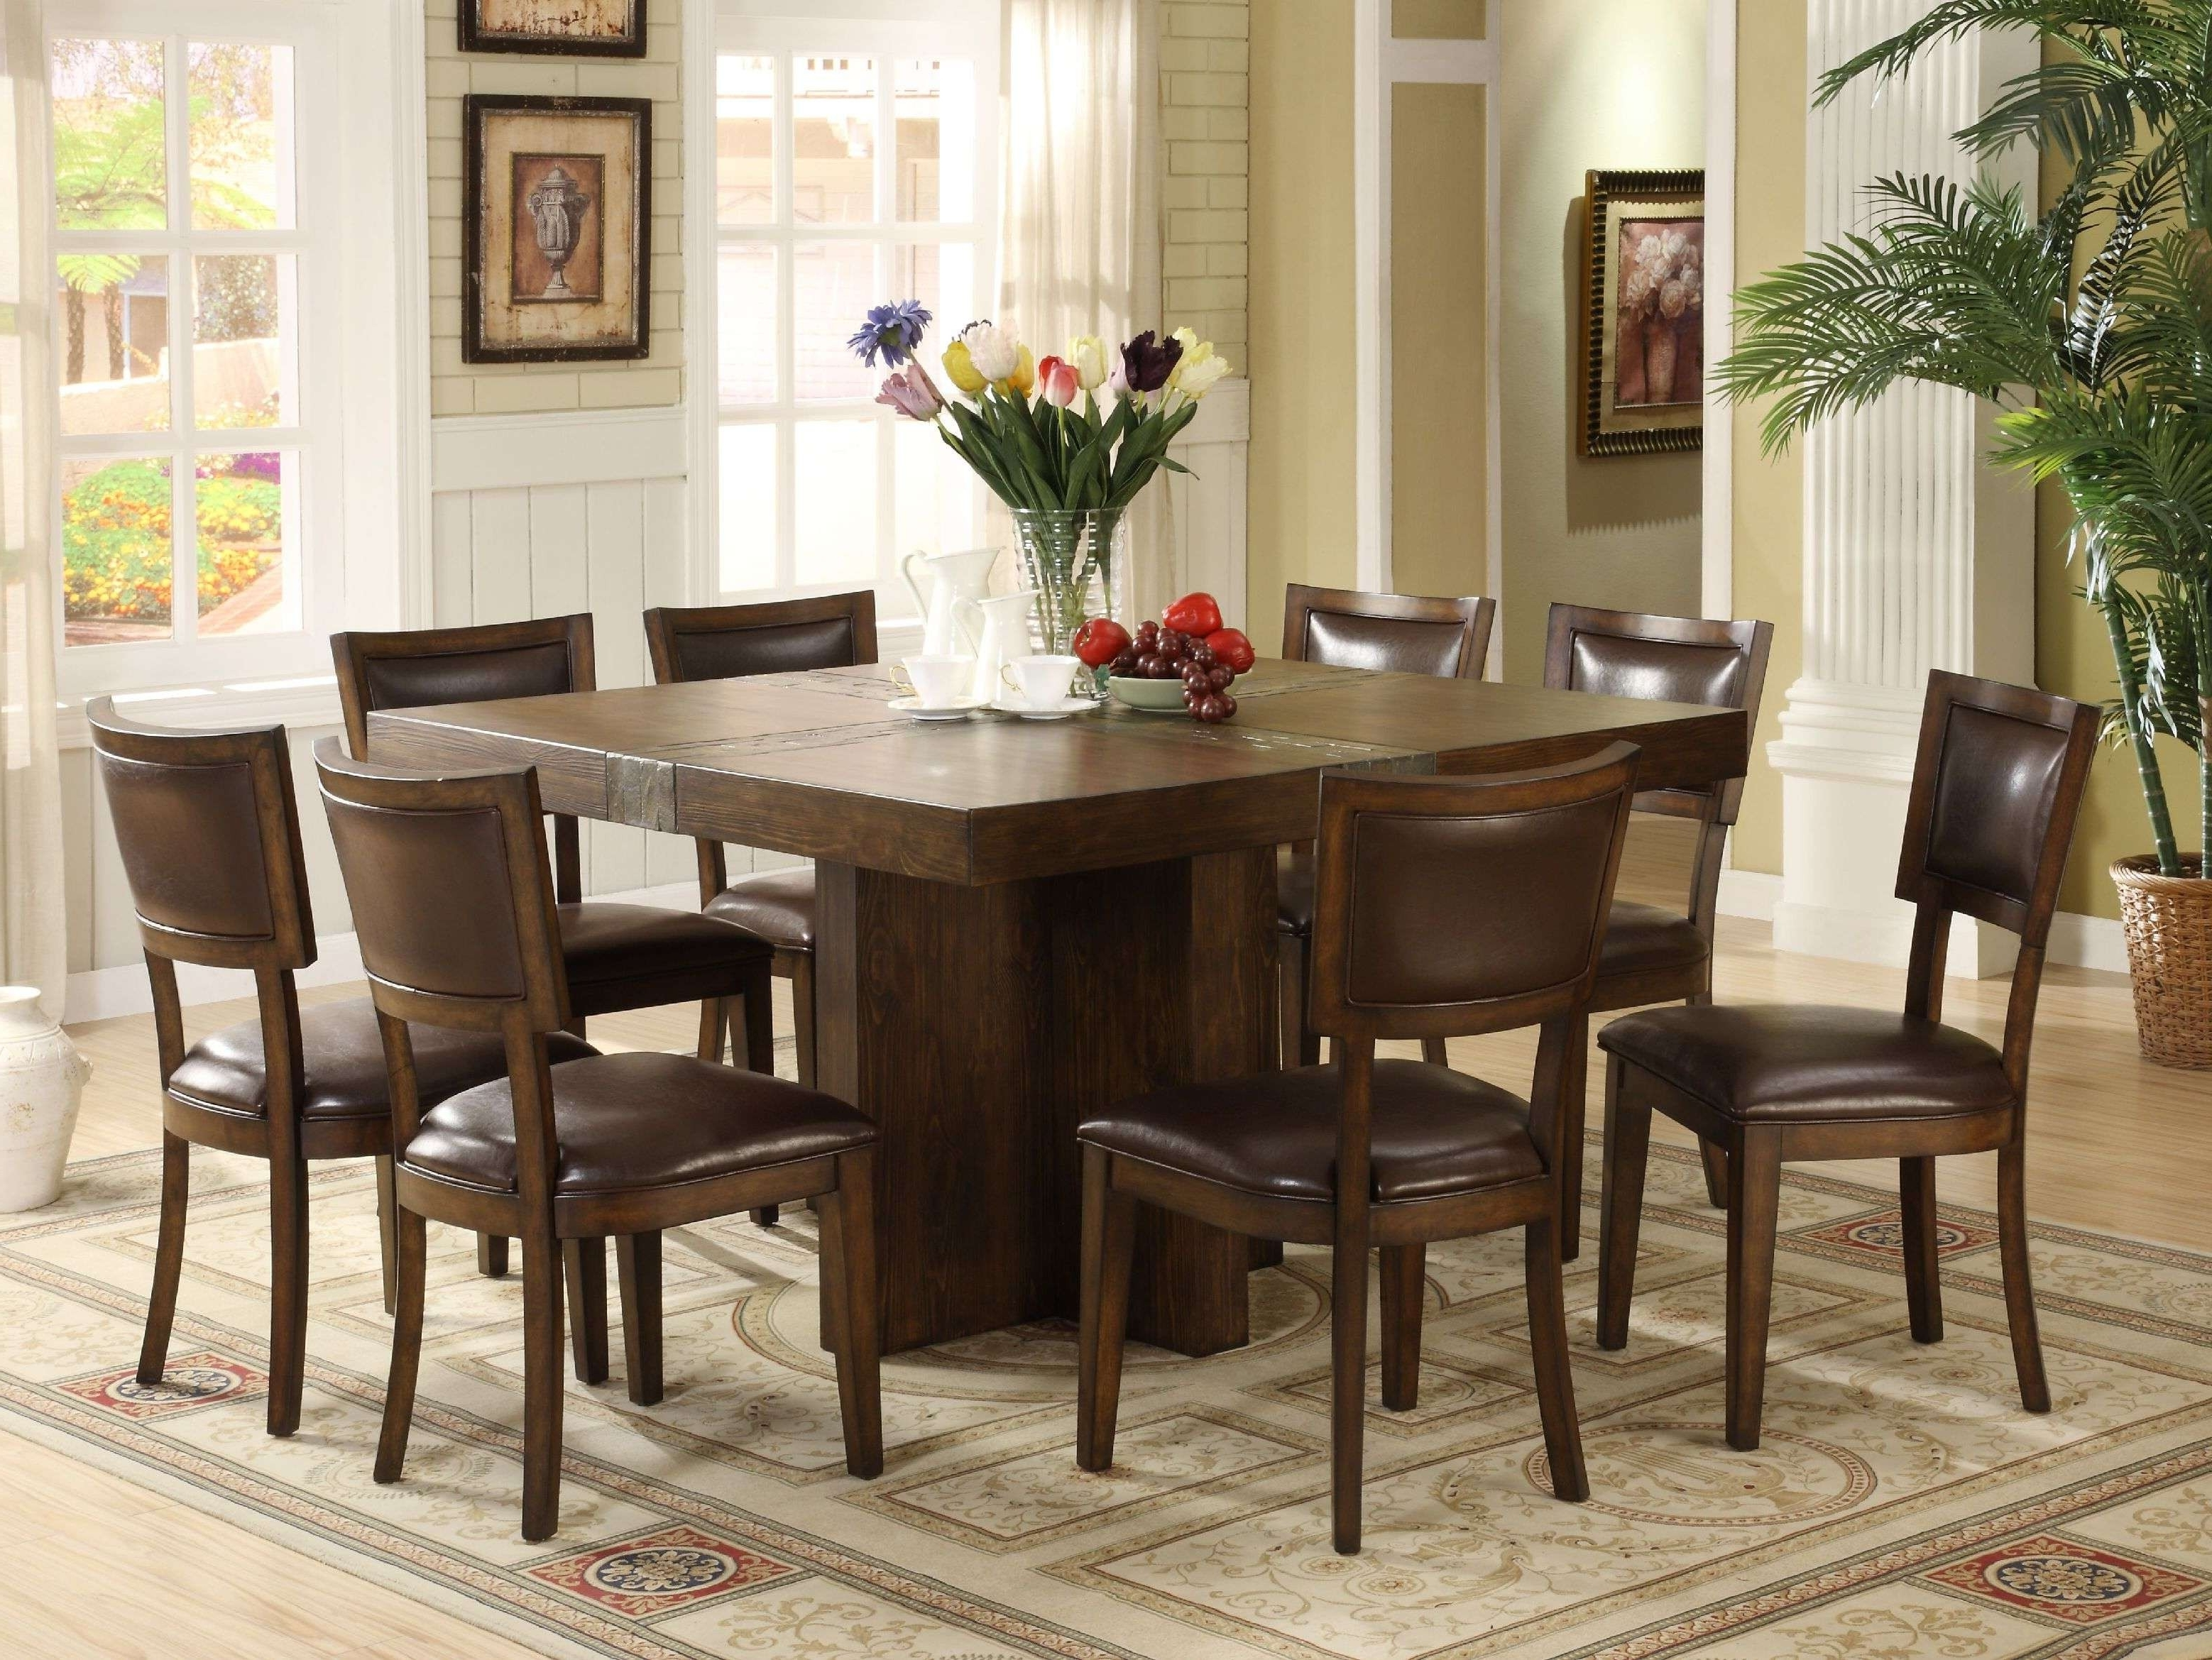 Current 8 Seater Round Dining Table And Chairs With Regard To Round Dining Tables For 8 Fresh Best 8 Seater Dining Table Set (View 24 of 25)